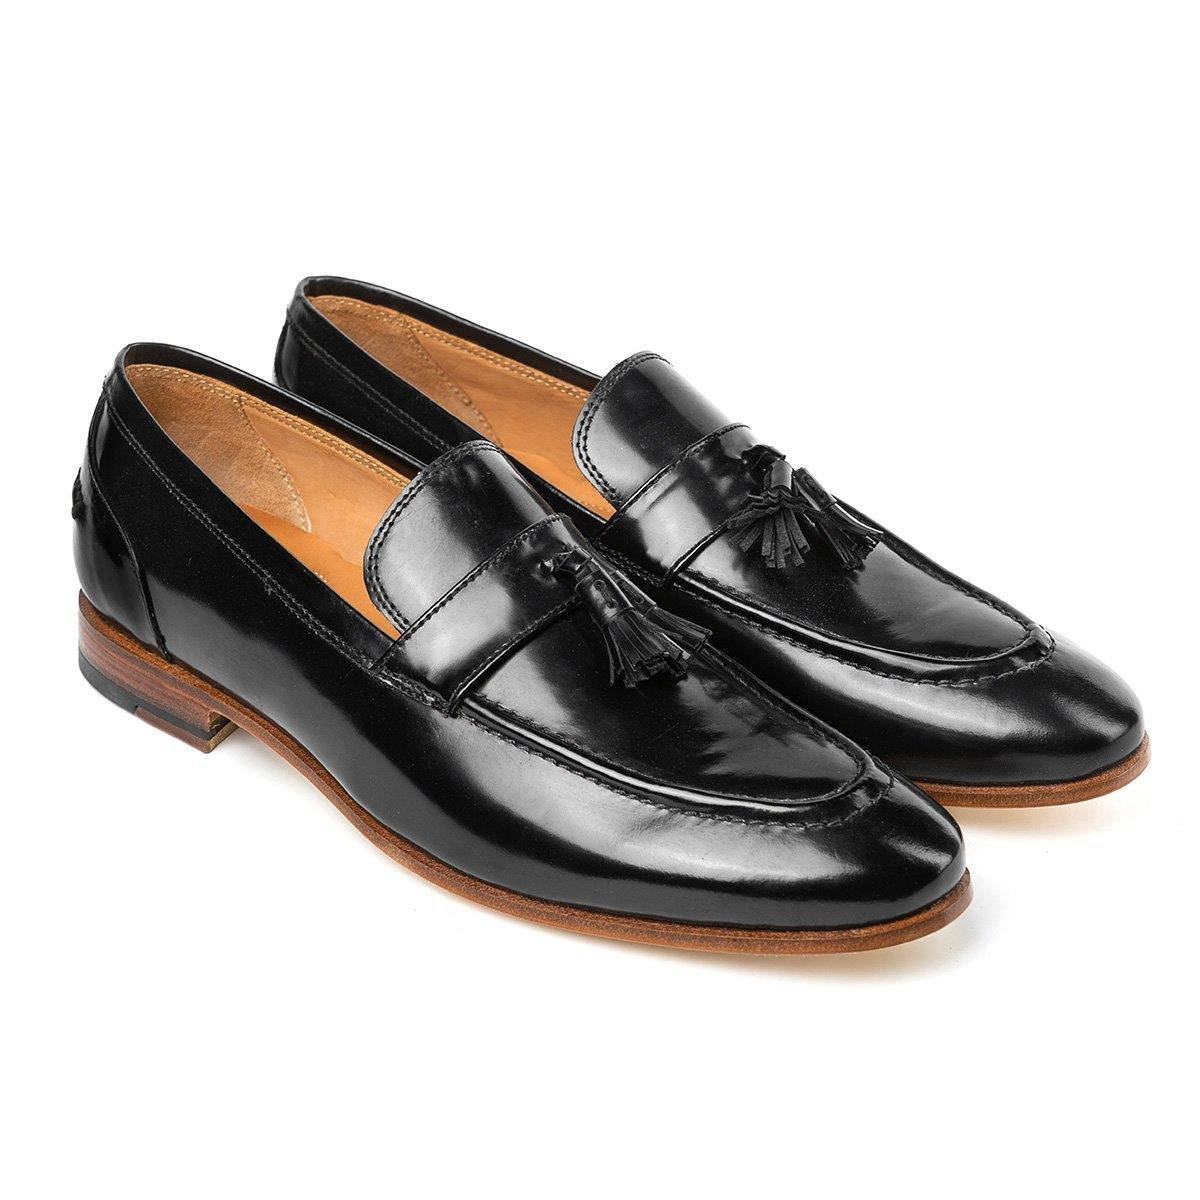 Steven - Tassel Loafers in Black Boxcalf - TLC - The Leather Crafts